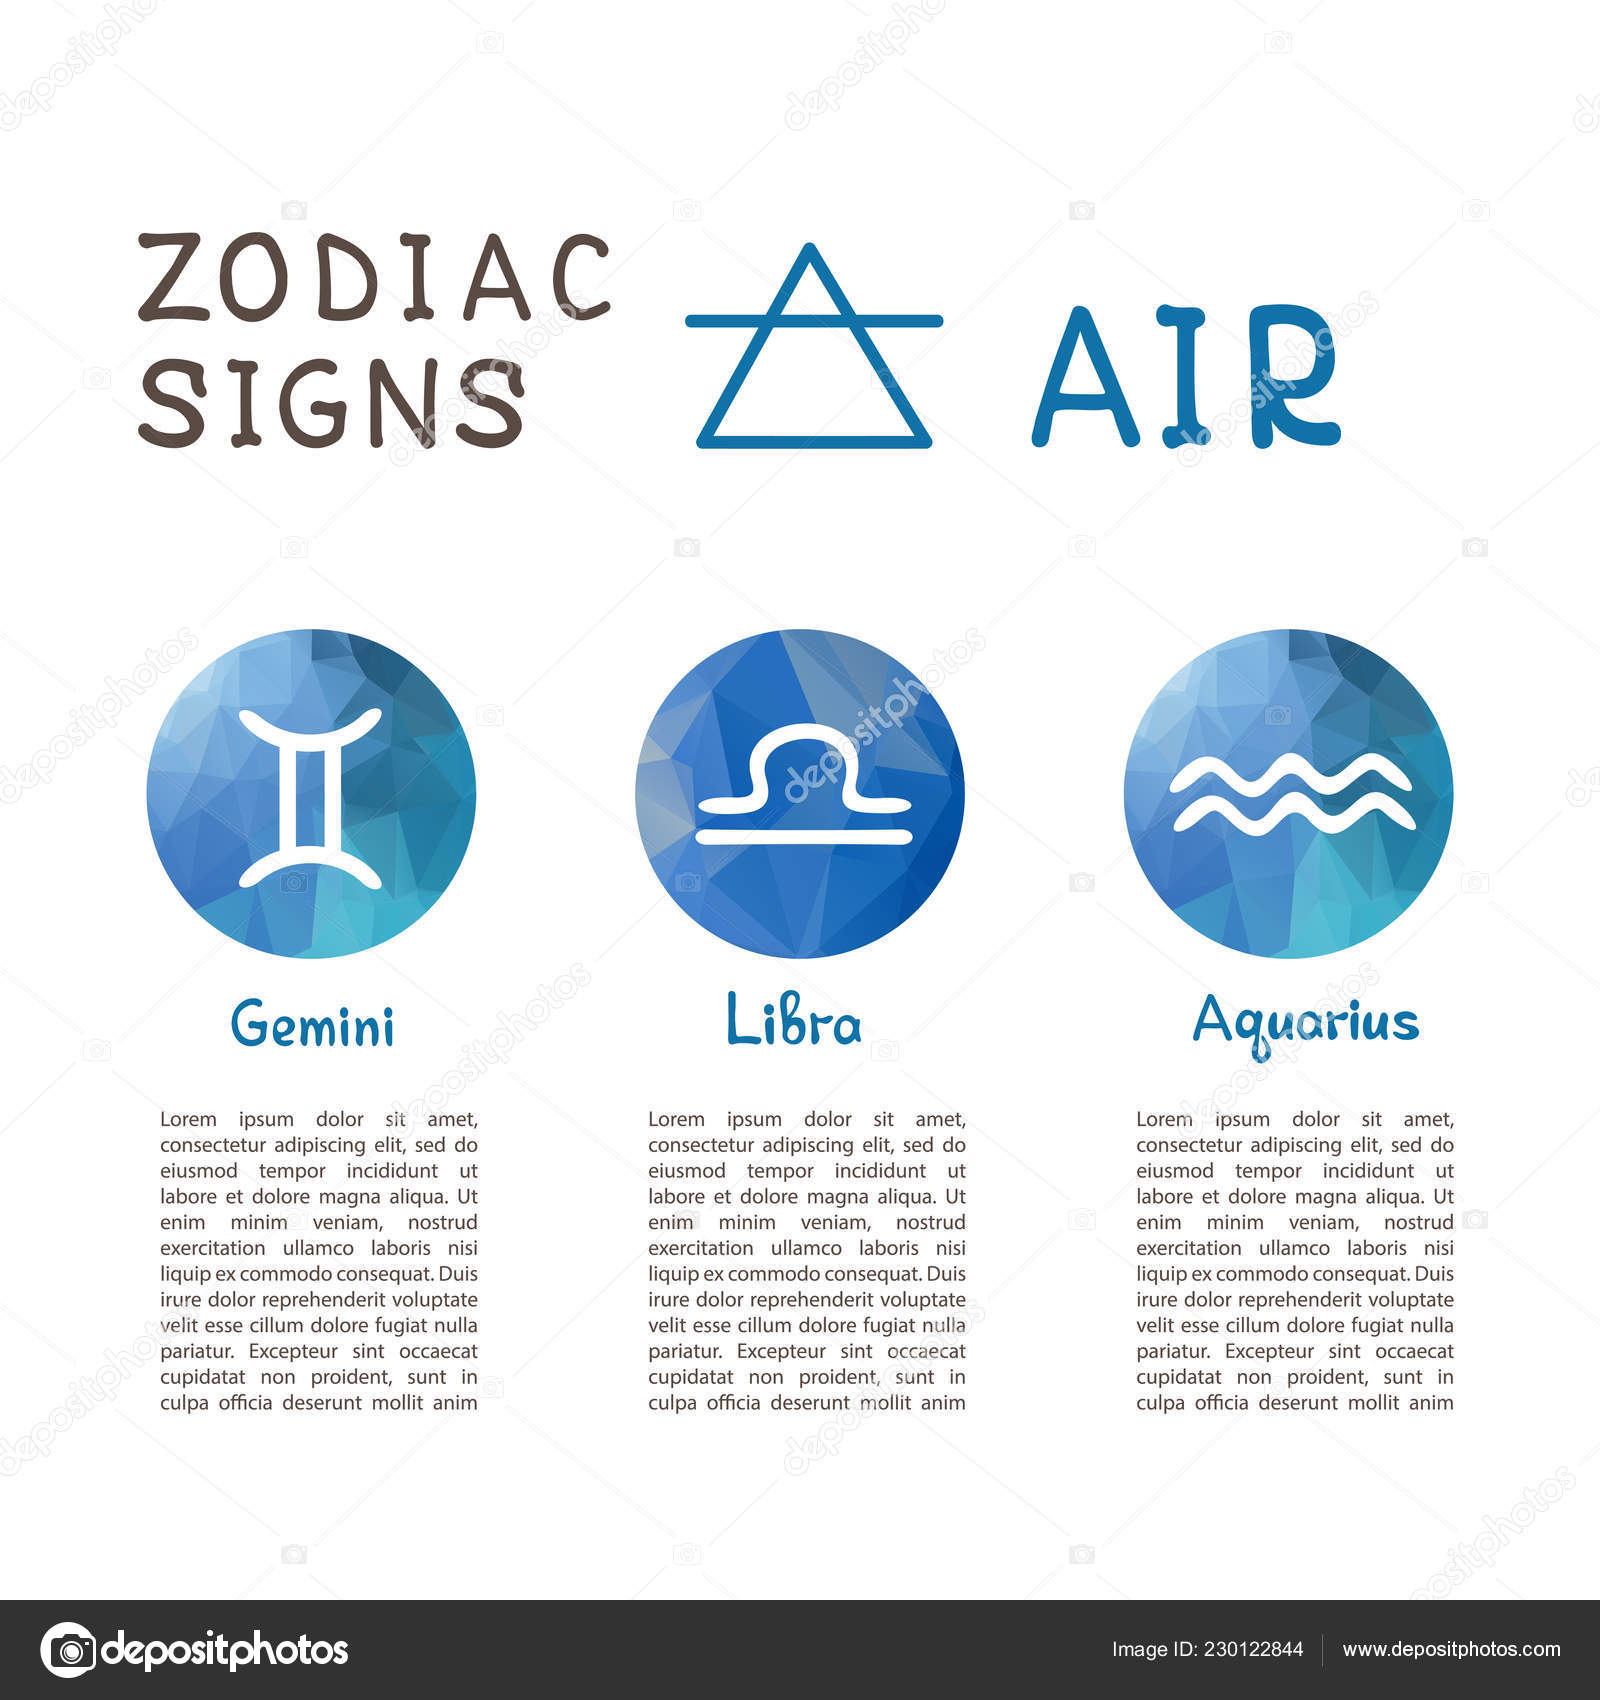 Zodiac Signs According Air Element Gemini Libra Aquarius